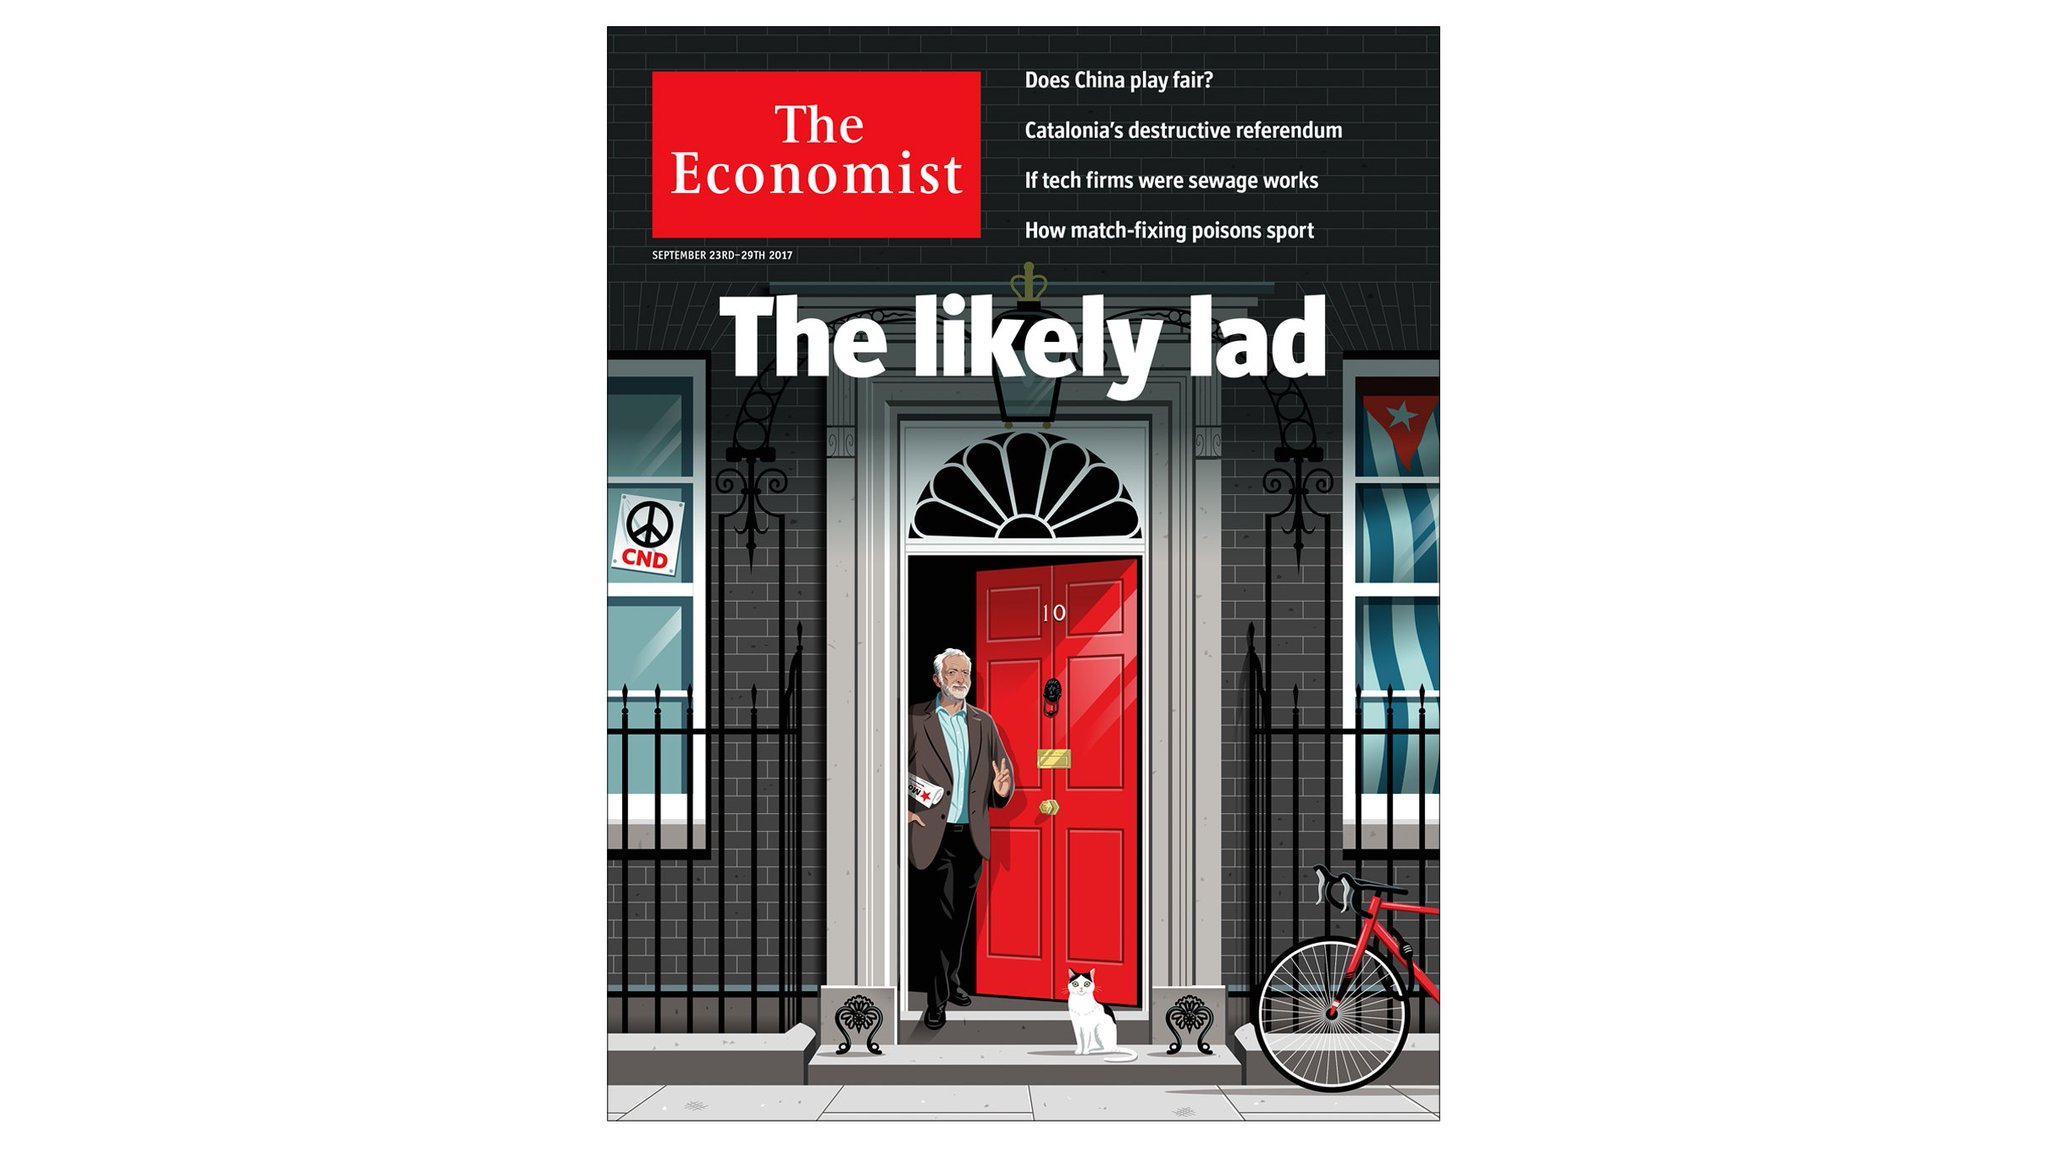 Could Jeremy Corbyn be Britain's next prime minister? Our UK cover this week https://t.co/S0i9KuG1IX https://t.co/KMPdy1g3WY